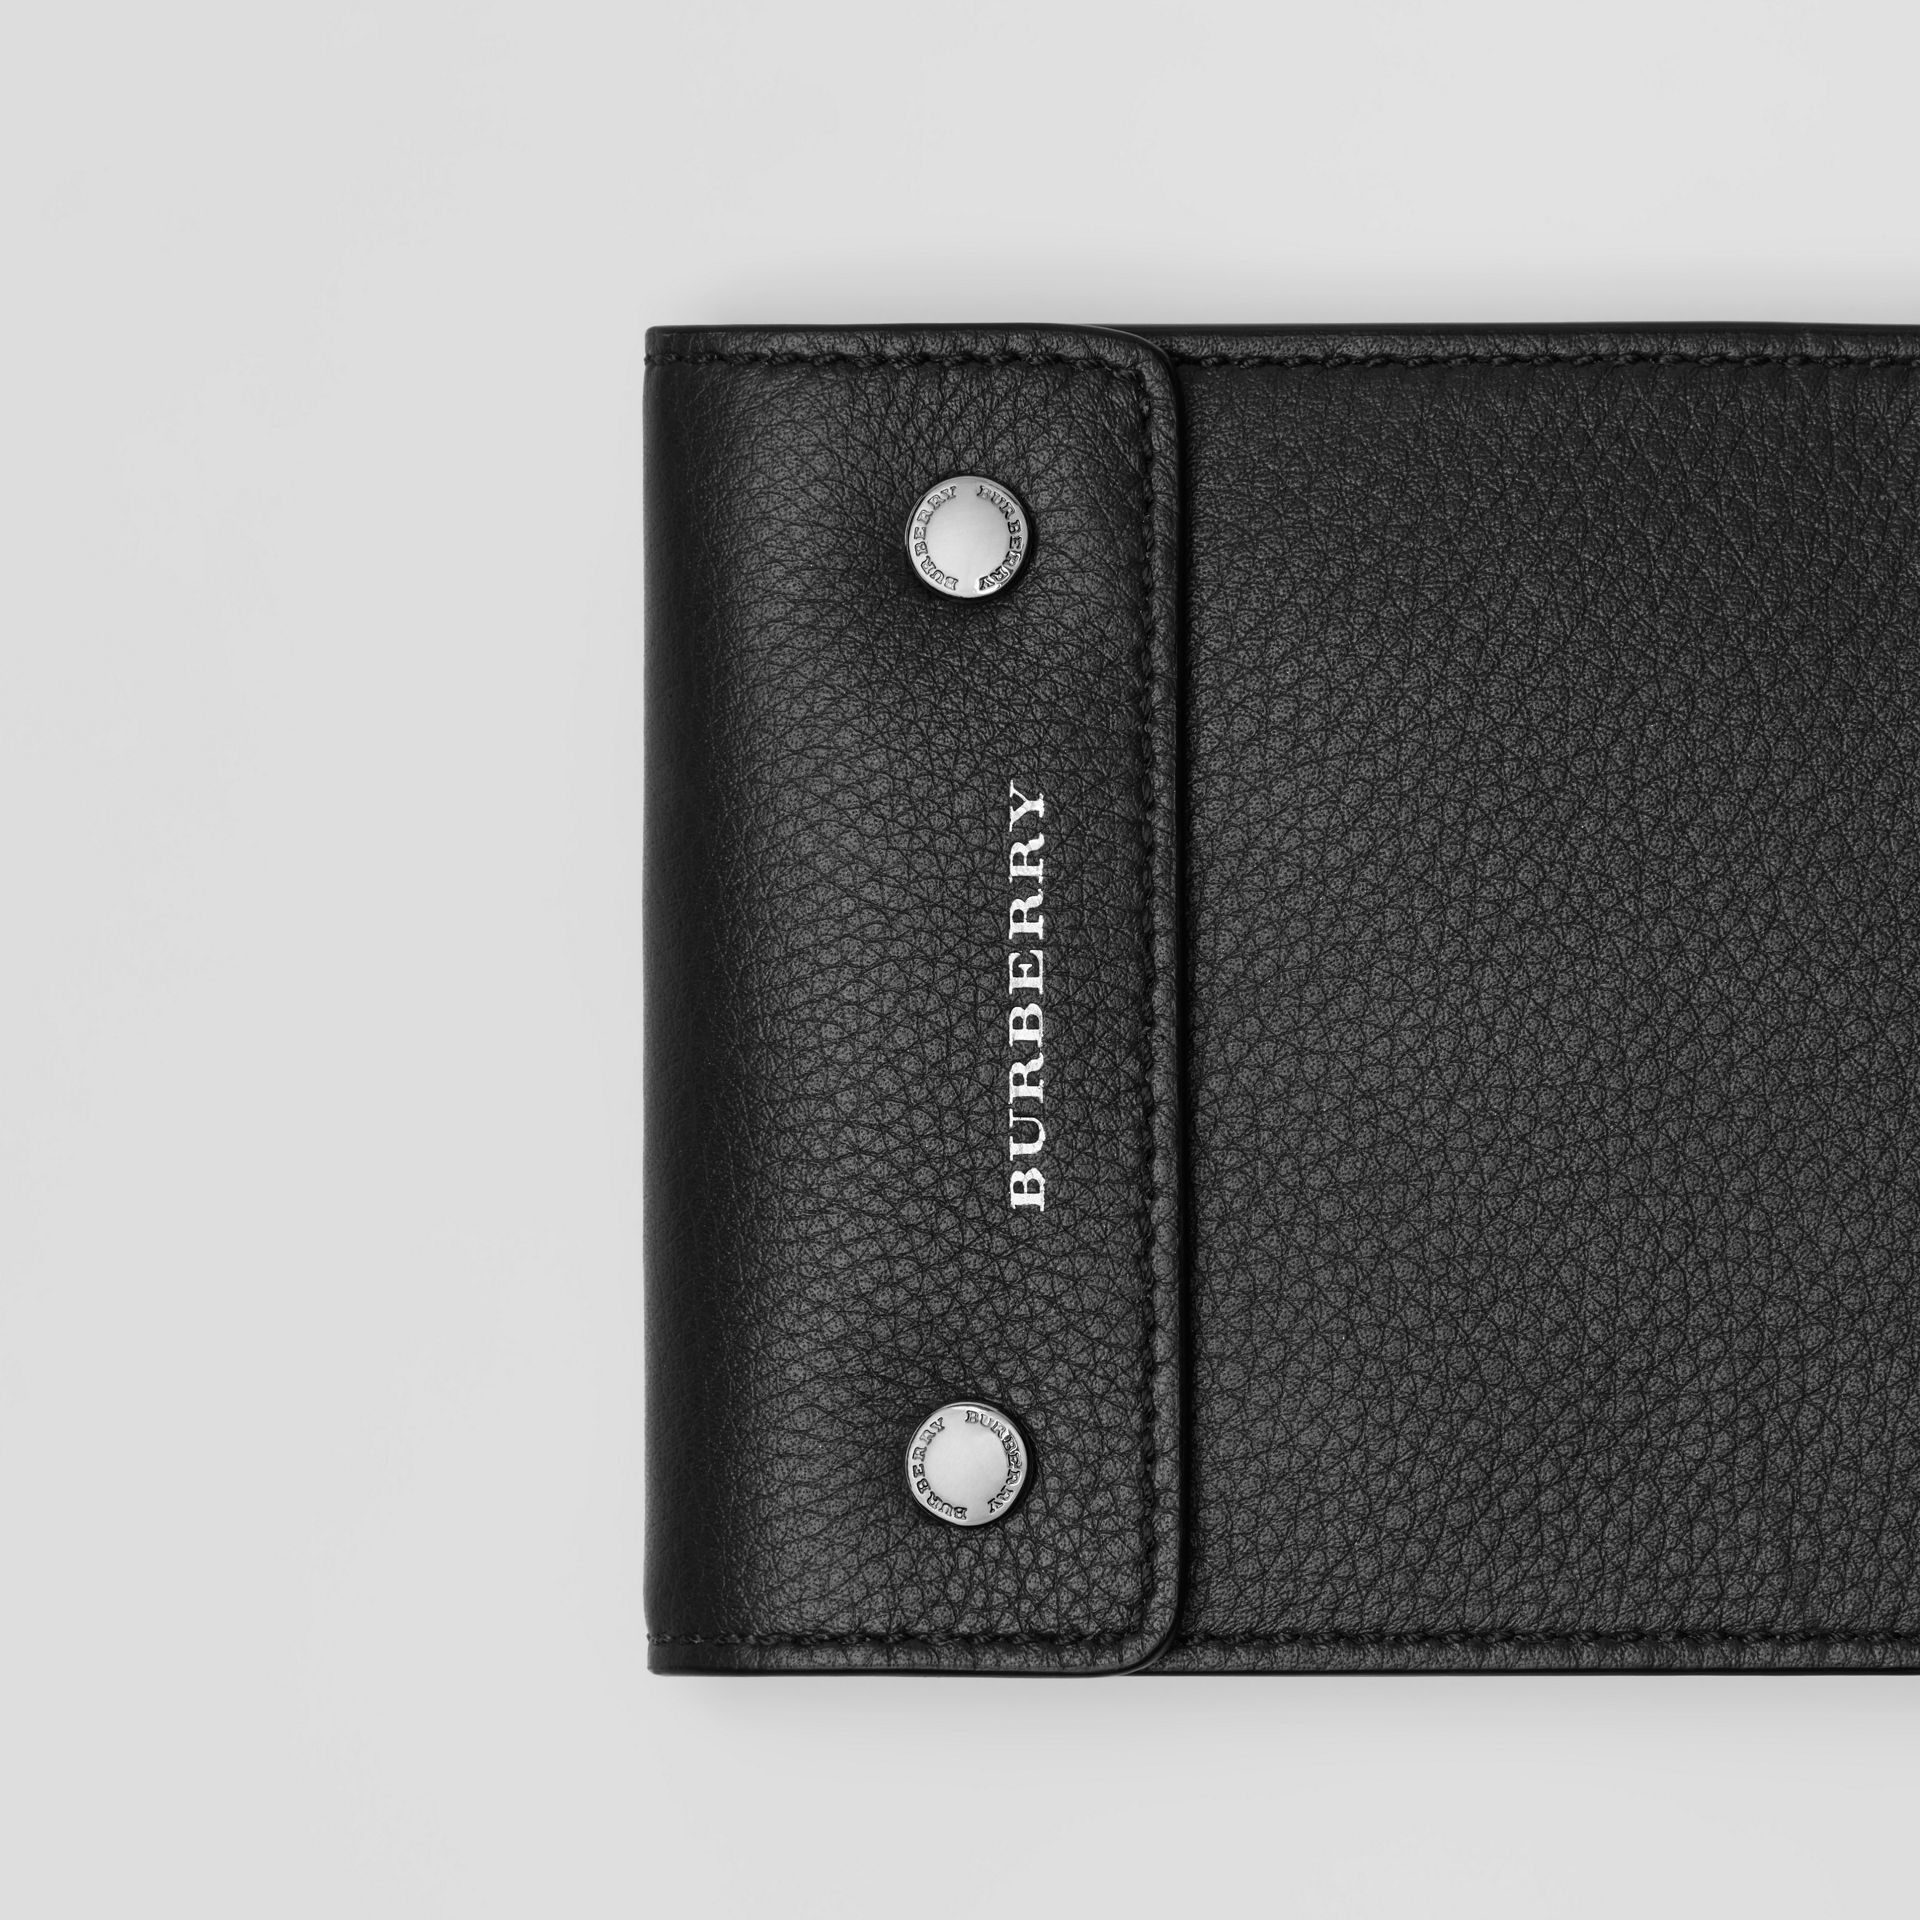 Press-stud Leather International Bifold Wallet in Black - Men | Burberry - gallery image 1